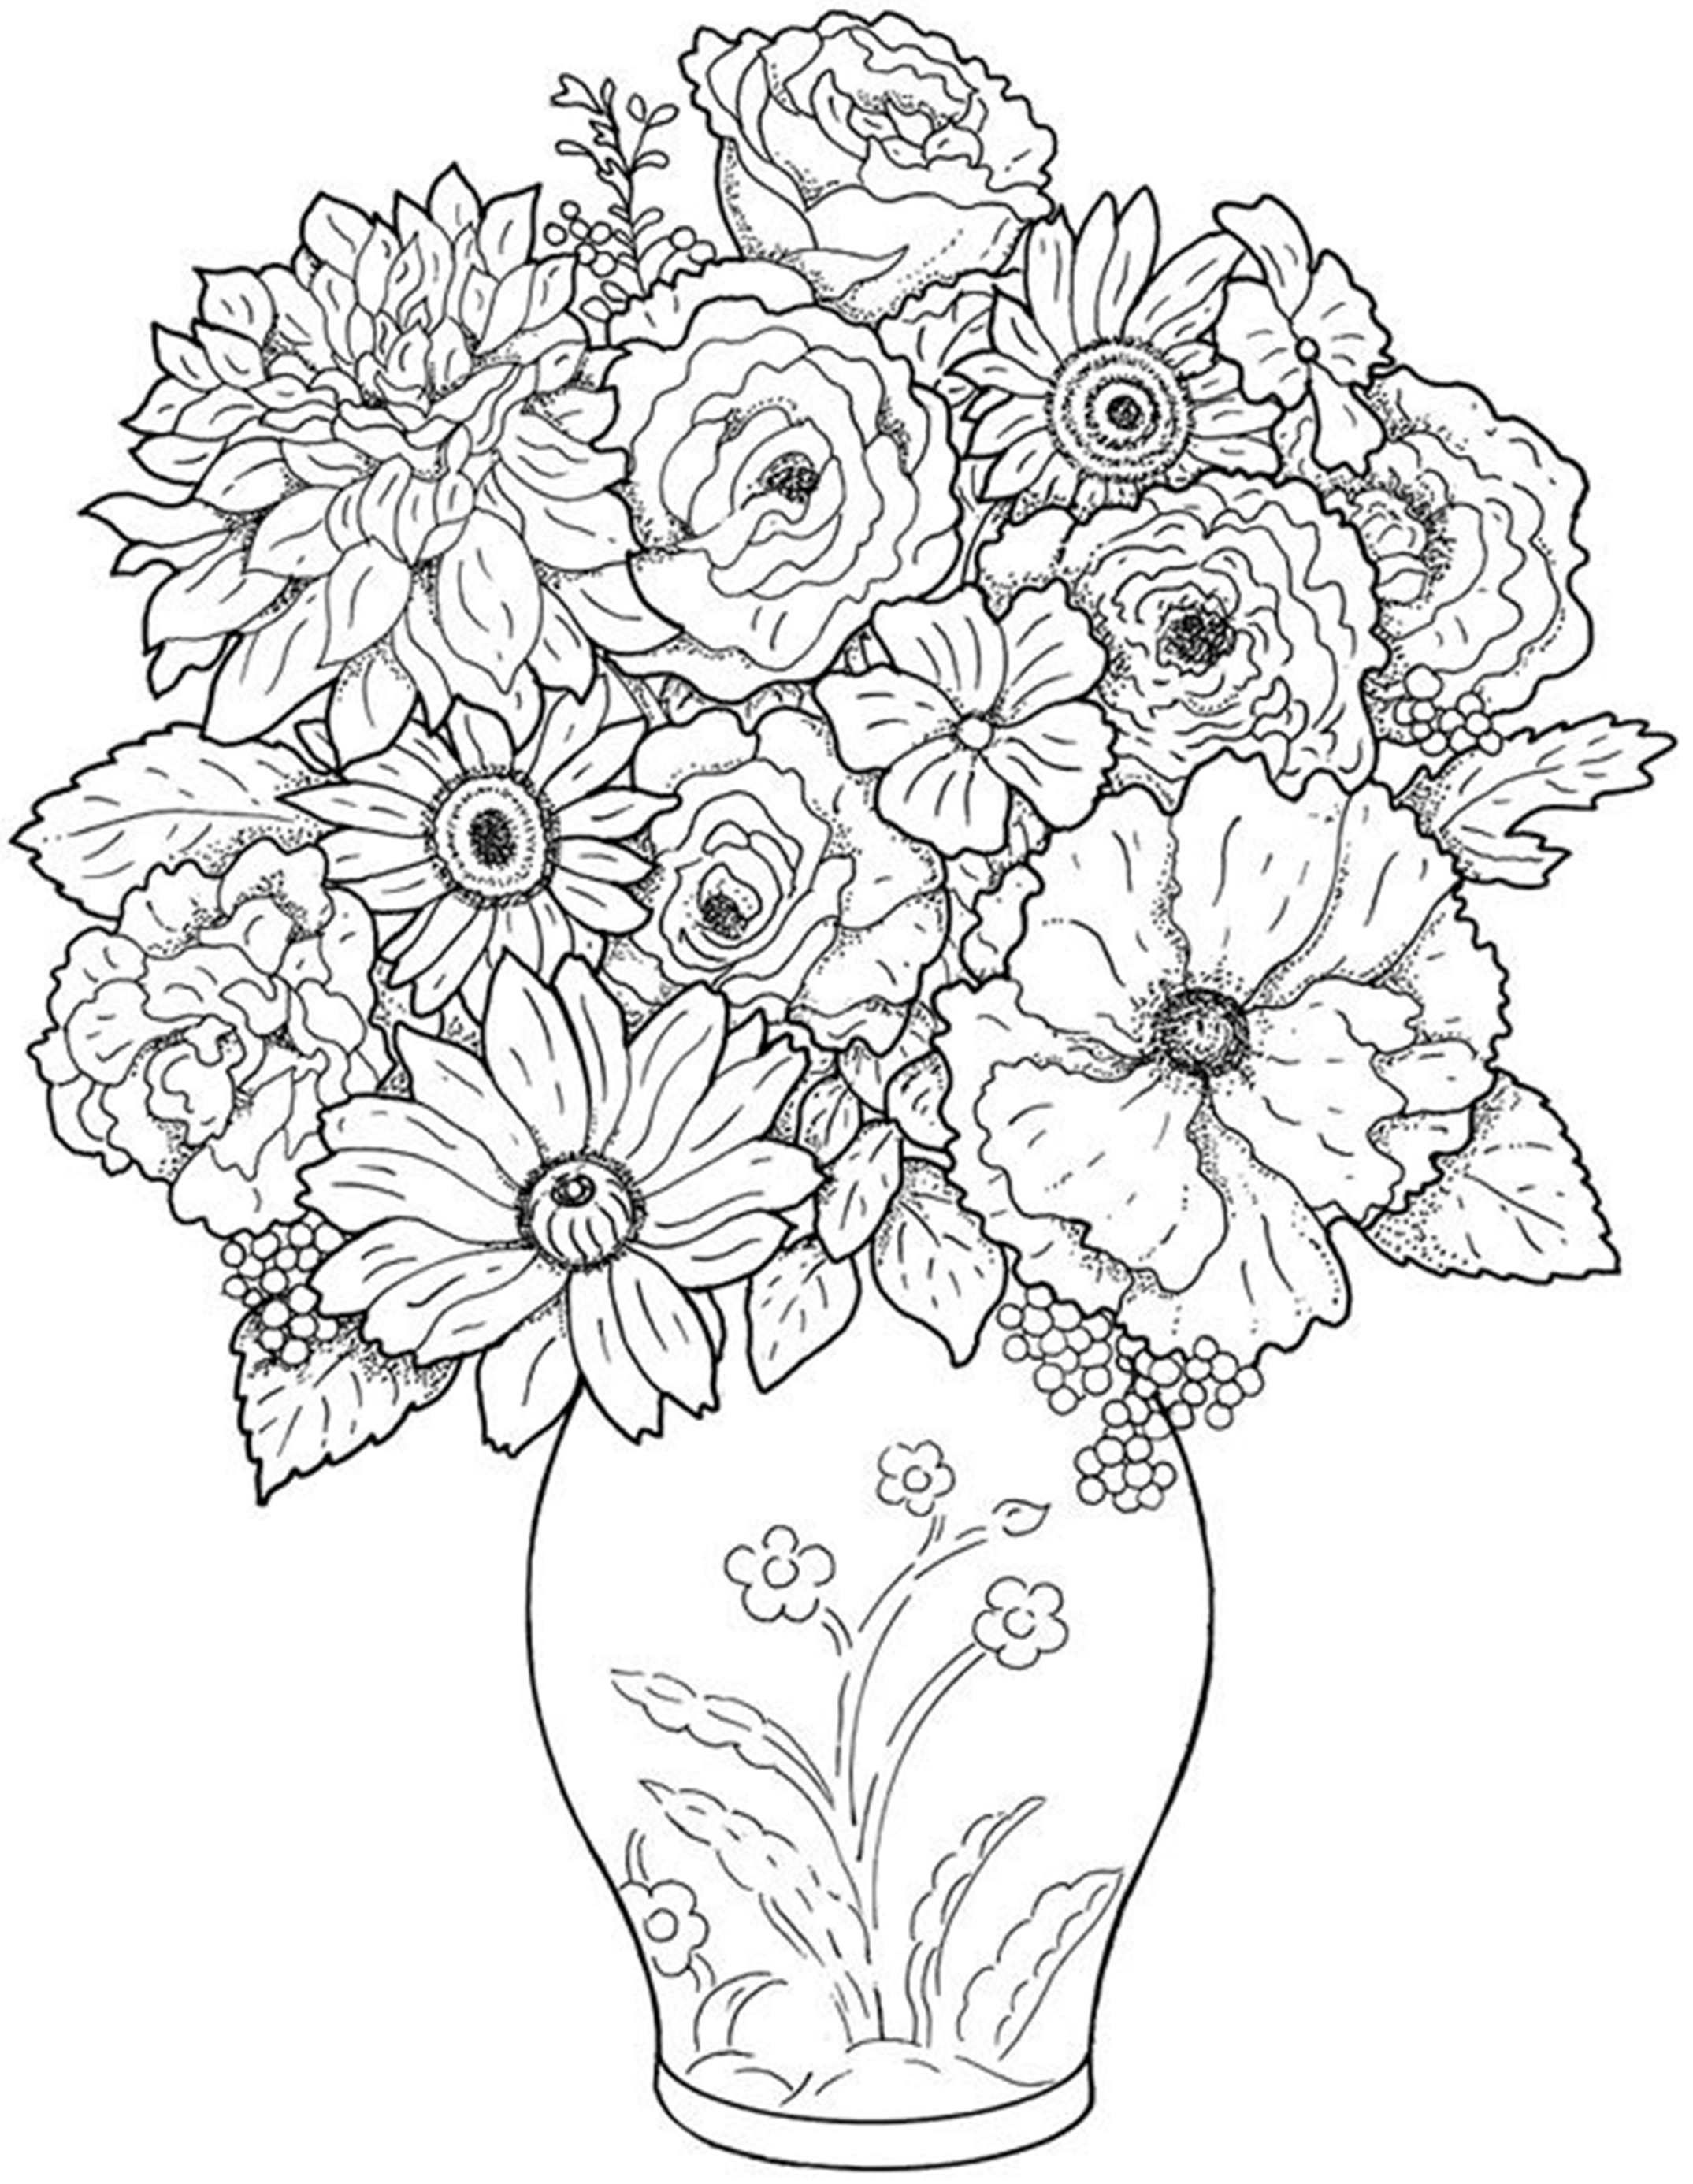 Colouring Pages To Print For Free : Free printable flower coloring pages for kids best